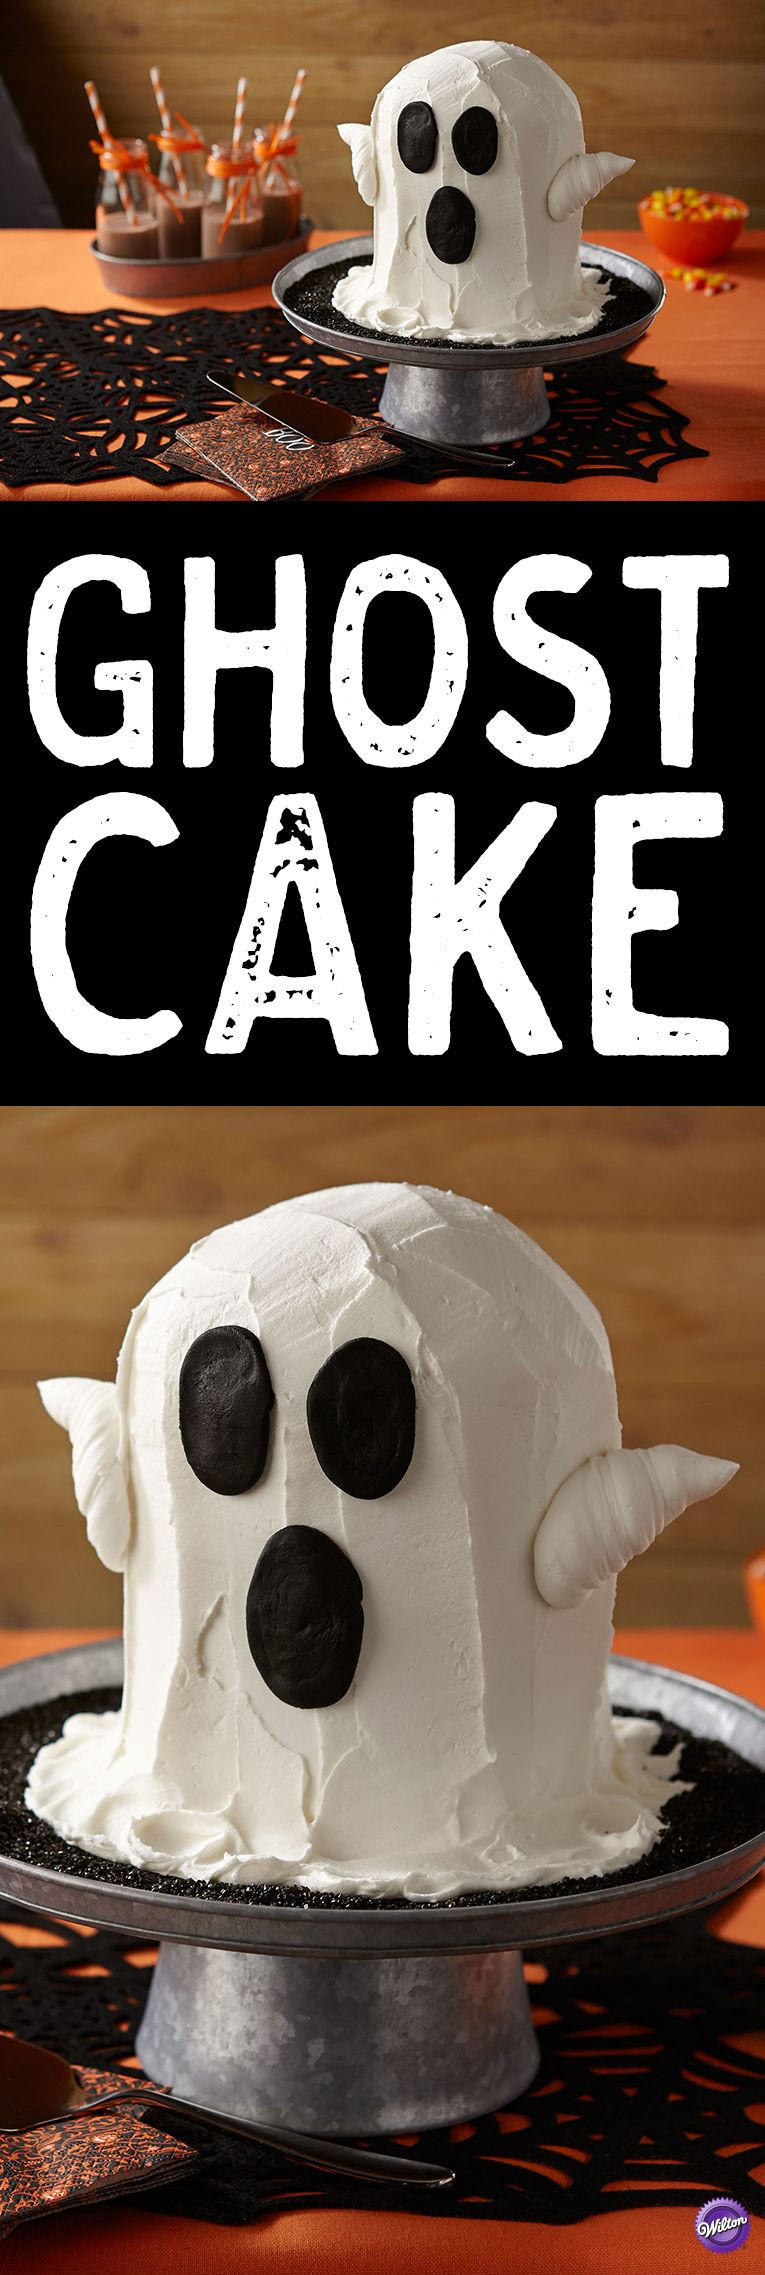 Publix Halloween Cakes  Ghost Cake